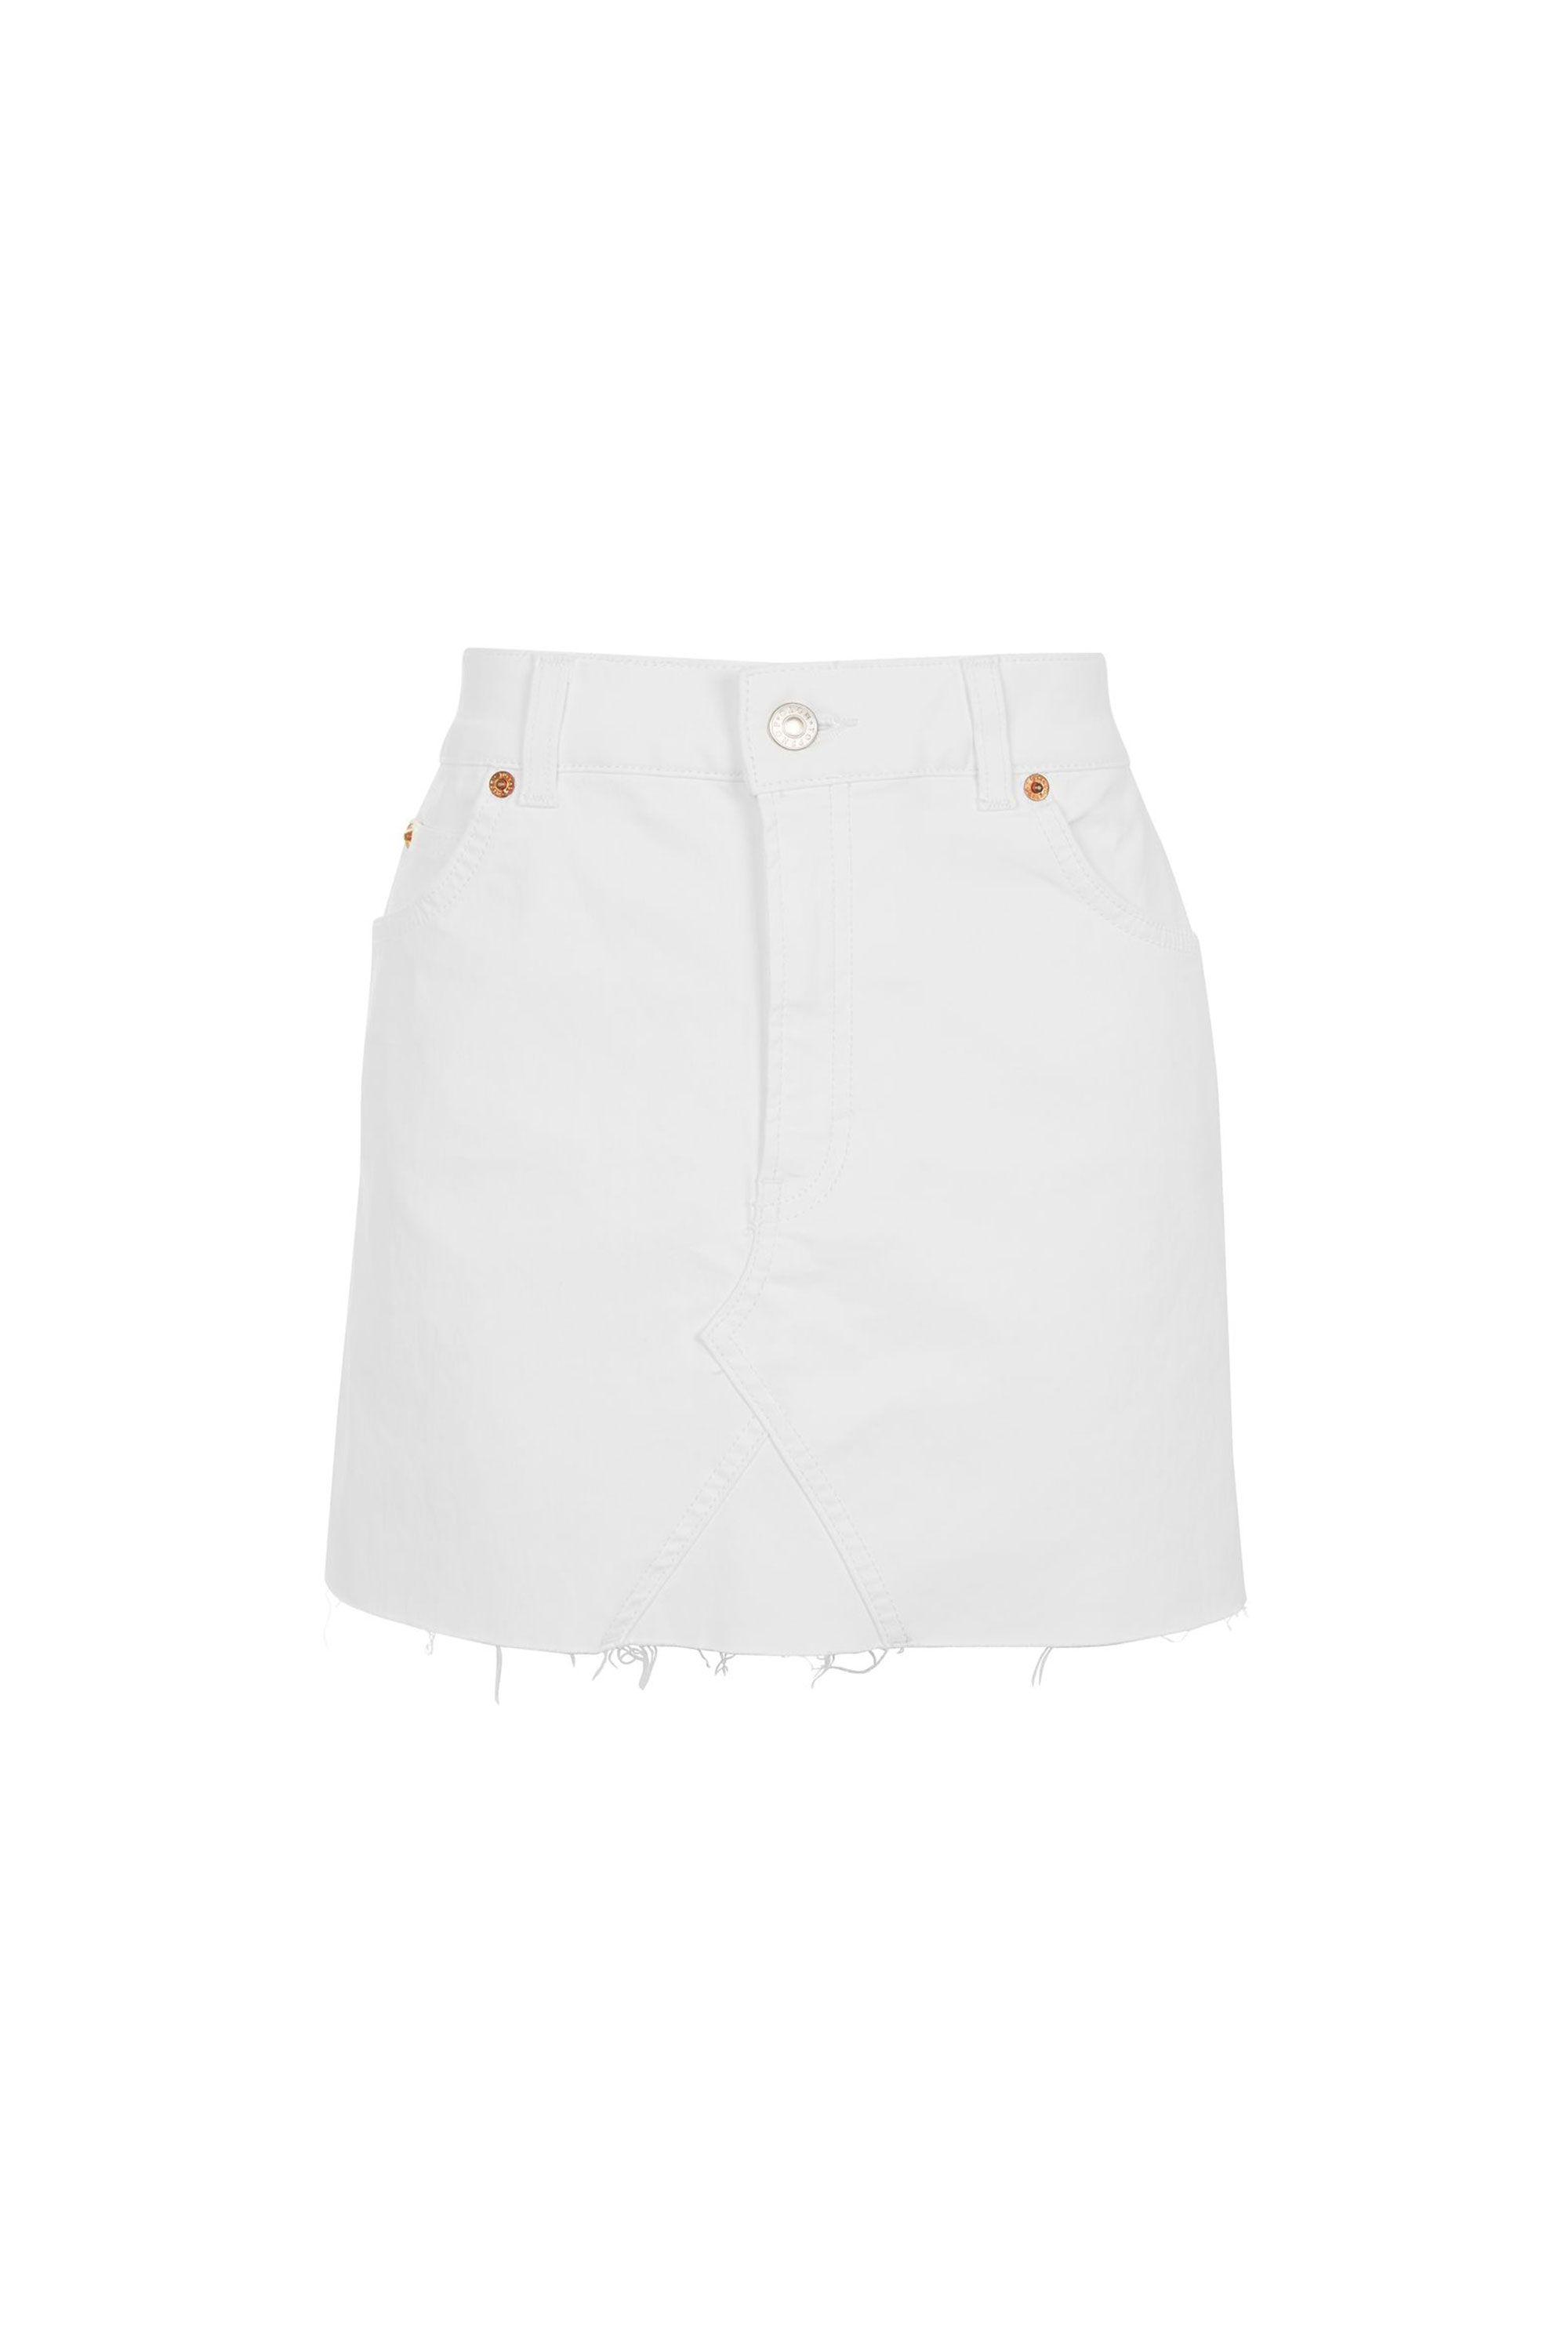 "<p>Topshop Moto Coated High Waisted Skirt, $65&#x3B;&nbsp&#x3B;<a href=""http://us.topshop.com/en/tsus/product/clothing-70483/skirts-70504/moto-coated-high-waisted-skirt-6347650?bi=0&amp&#x3B;ps=20"" target=""_blank"" data-tracking-id=""recirc-text-link"">topshop.com</a></p>"